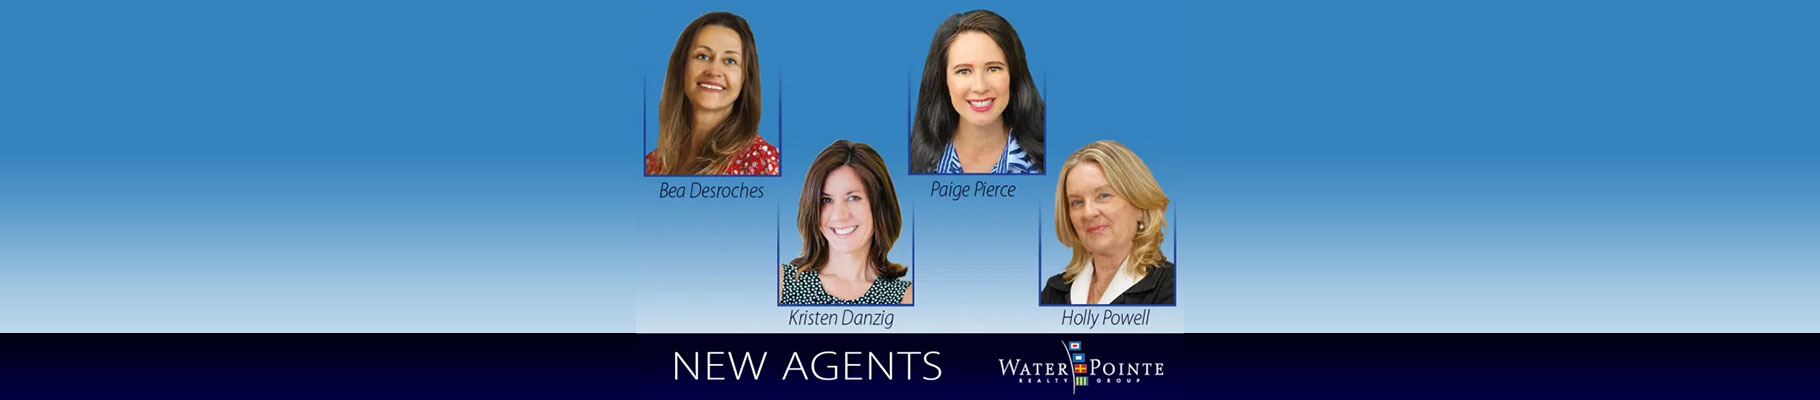 Four New Agents Join Water Pointe Realty Group, Tequesta